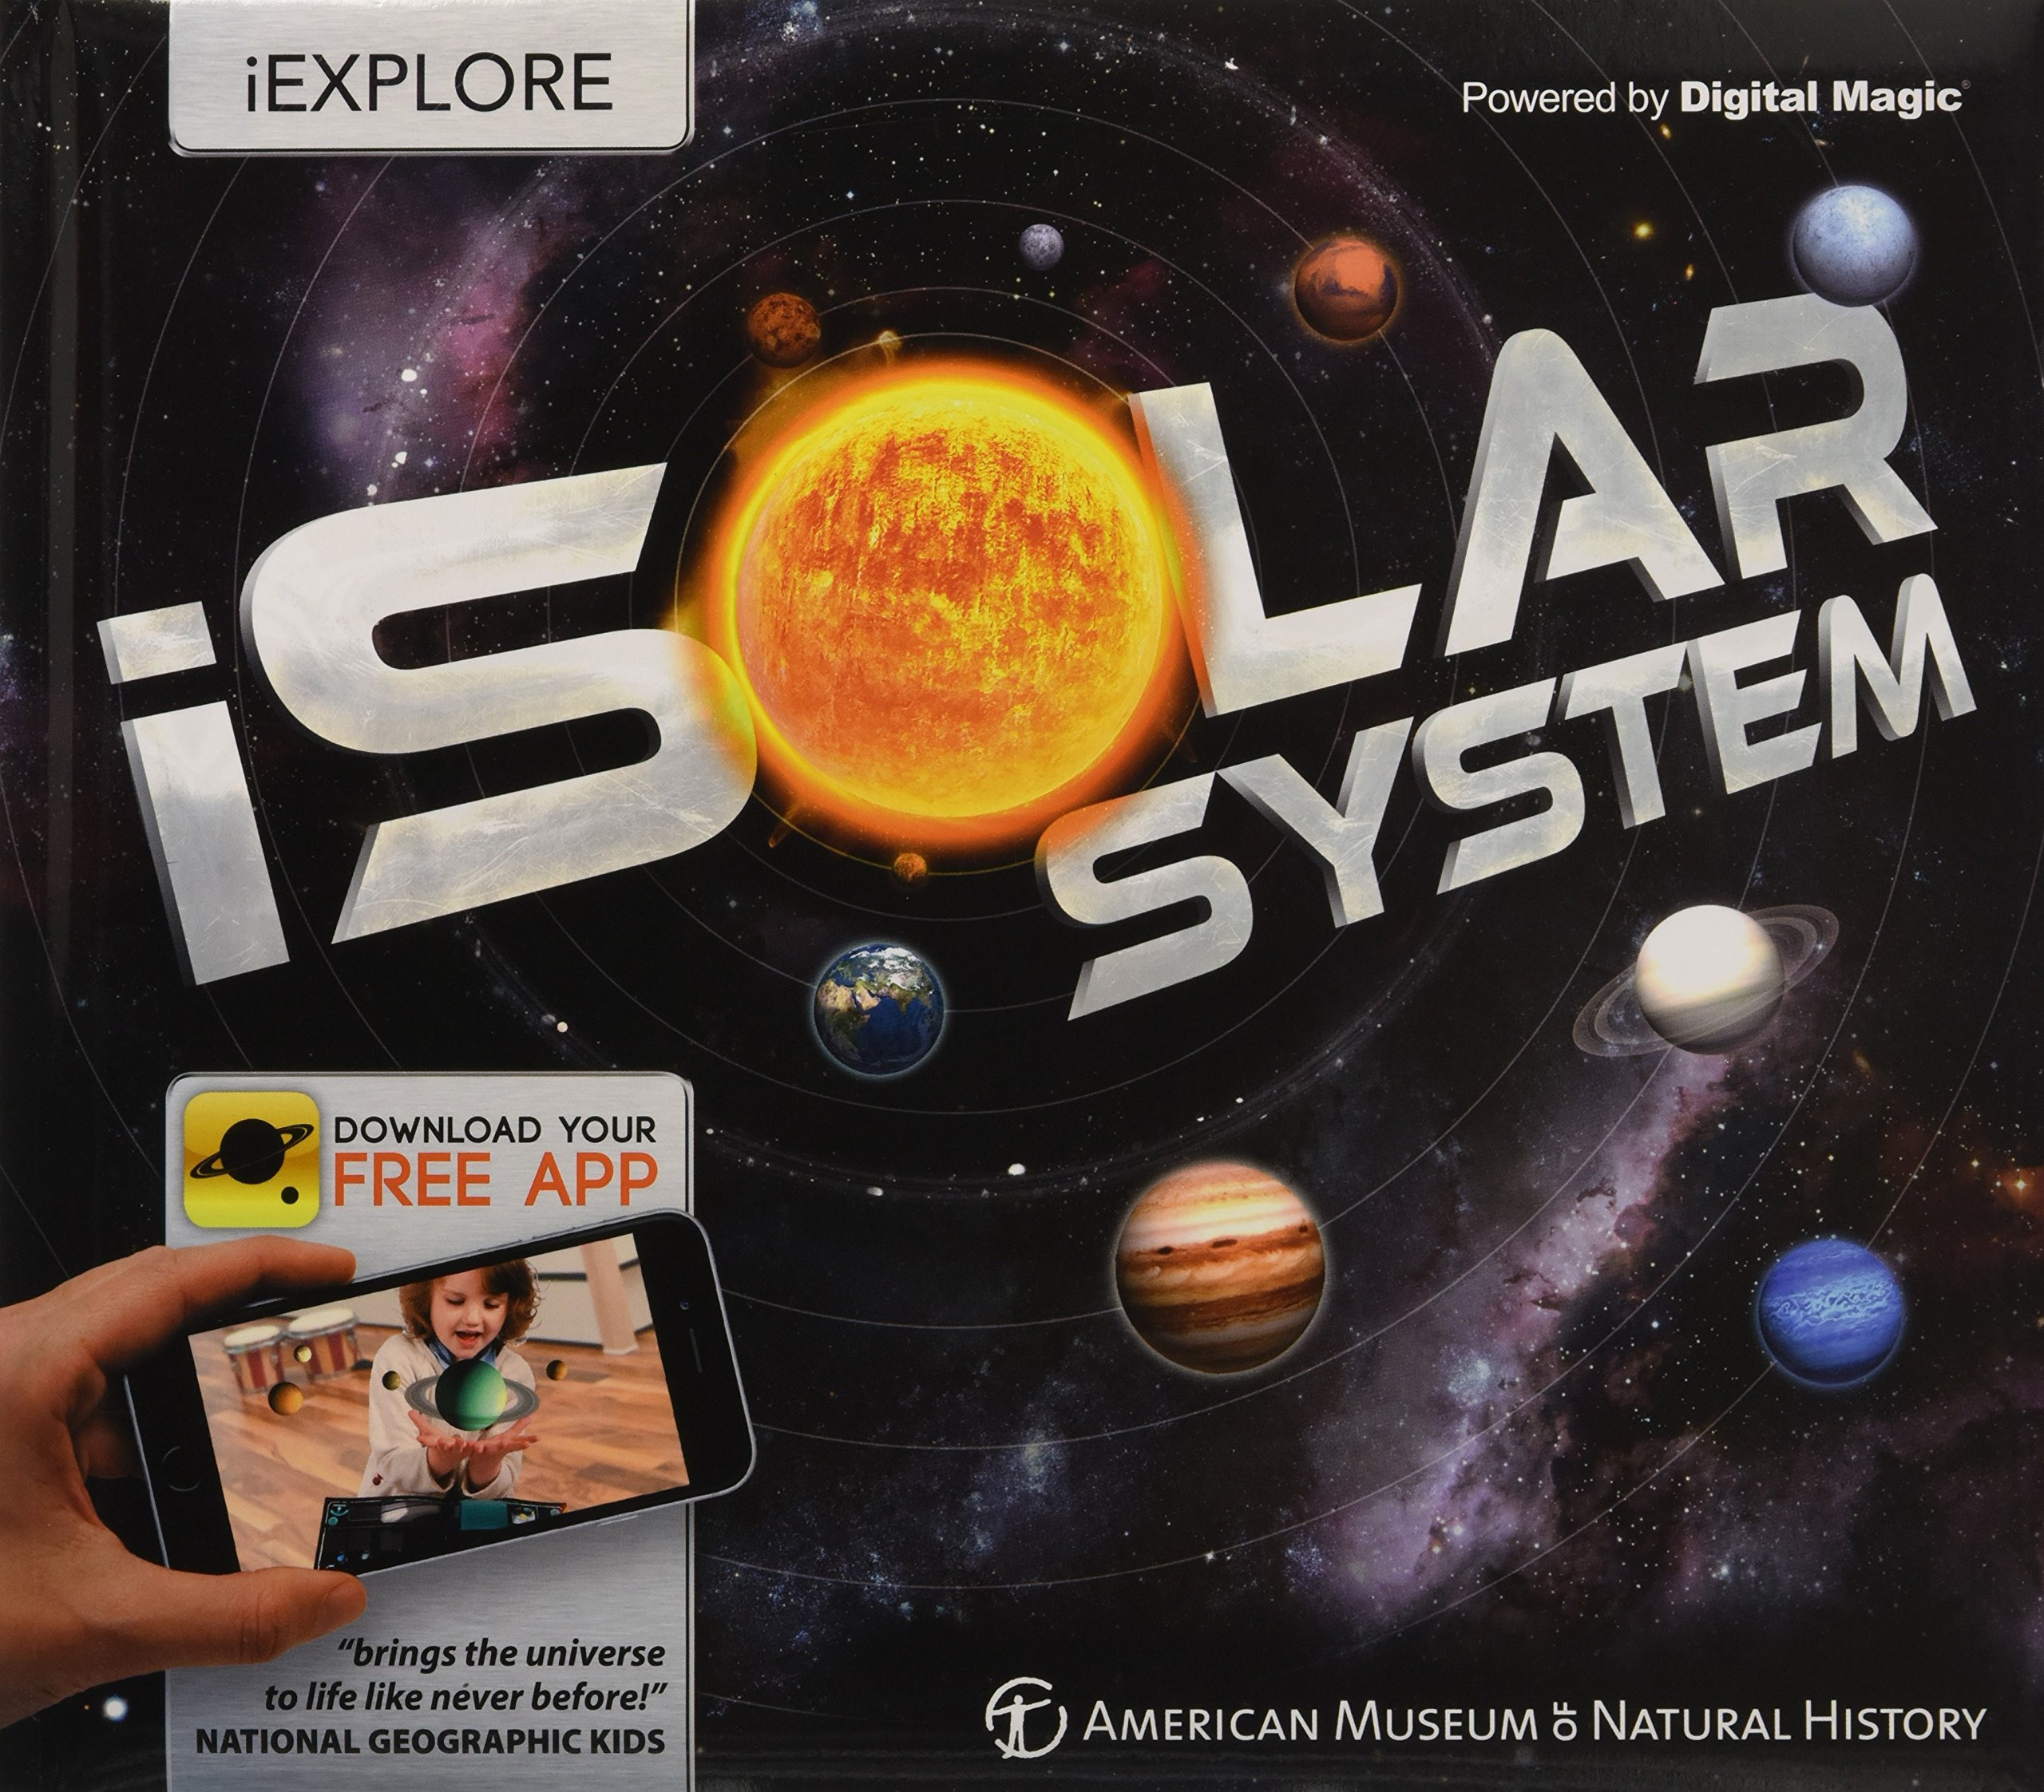 iSolar System: An Augmented Reality Book